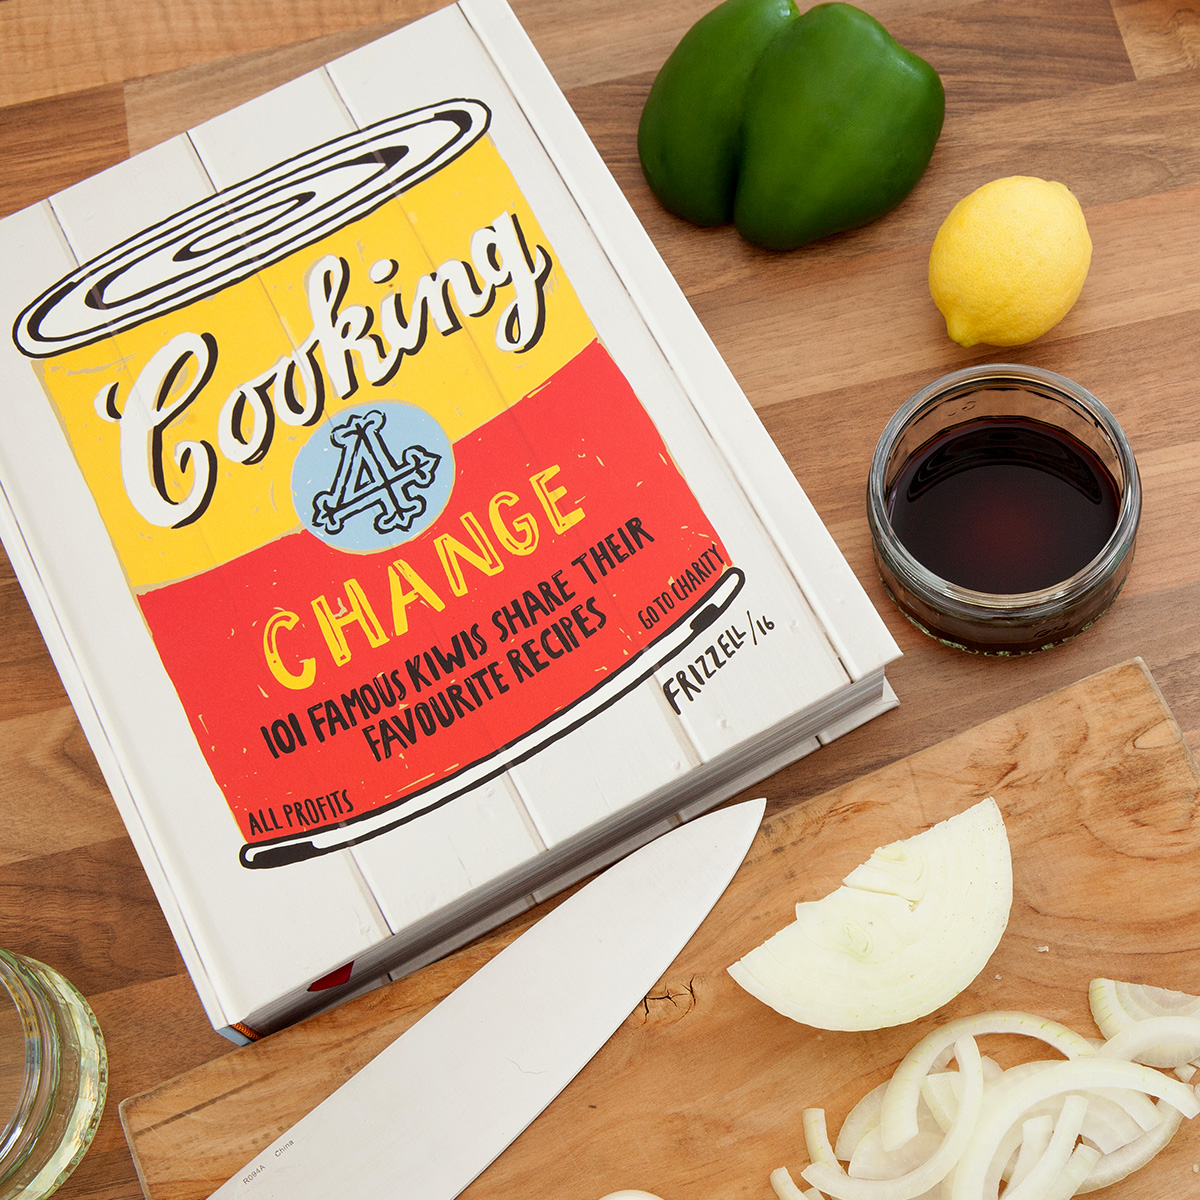 Cooking 4 Change - A diverse selection of recipes and intimate cooking stories from a raft of our favourite personalities who want to make a difference. The recipes and stories are accompanied by sumptuous photography, mostly taken inside each celebrity's own kitchen.(Published September 2016)